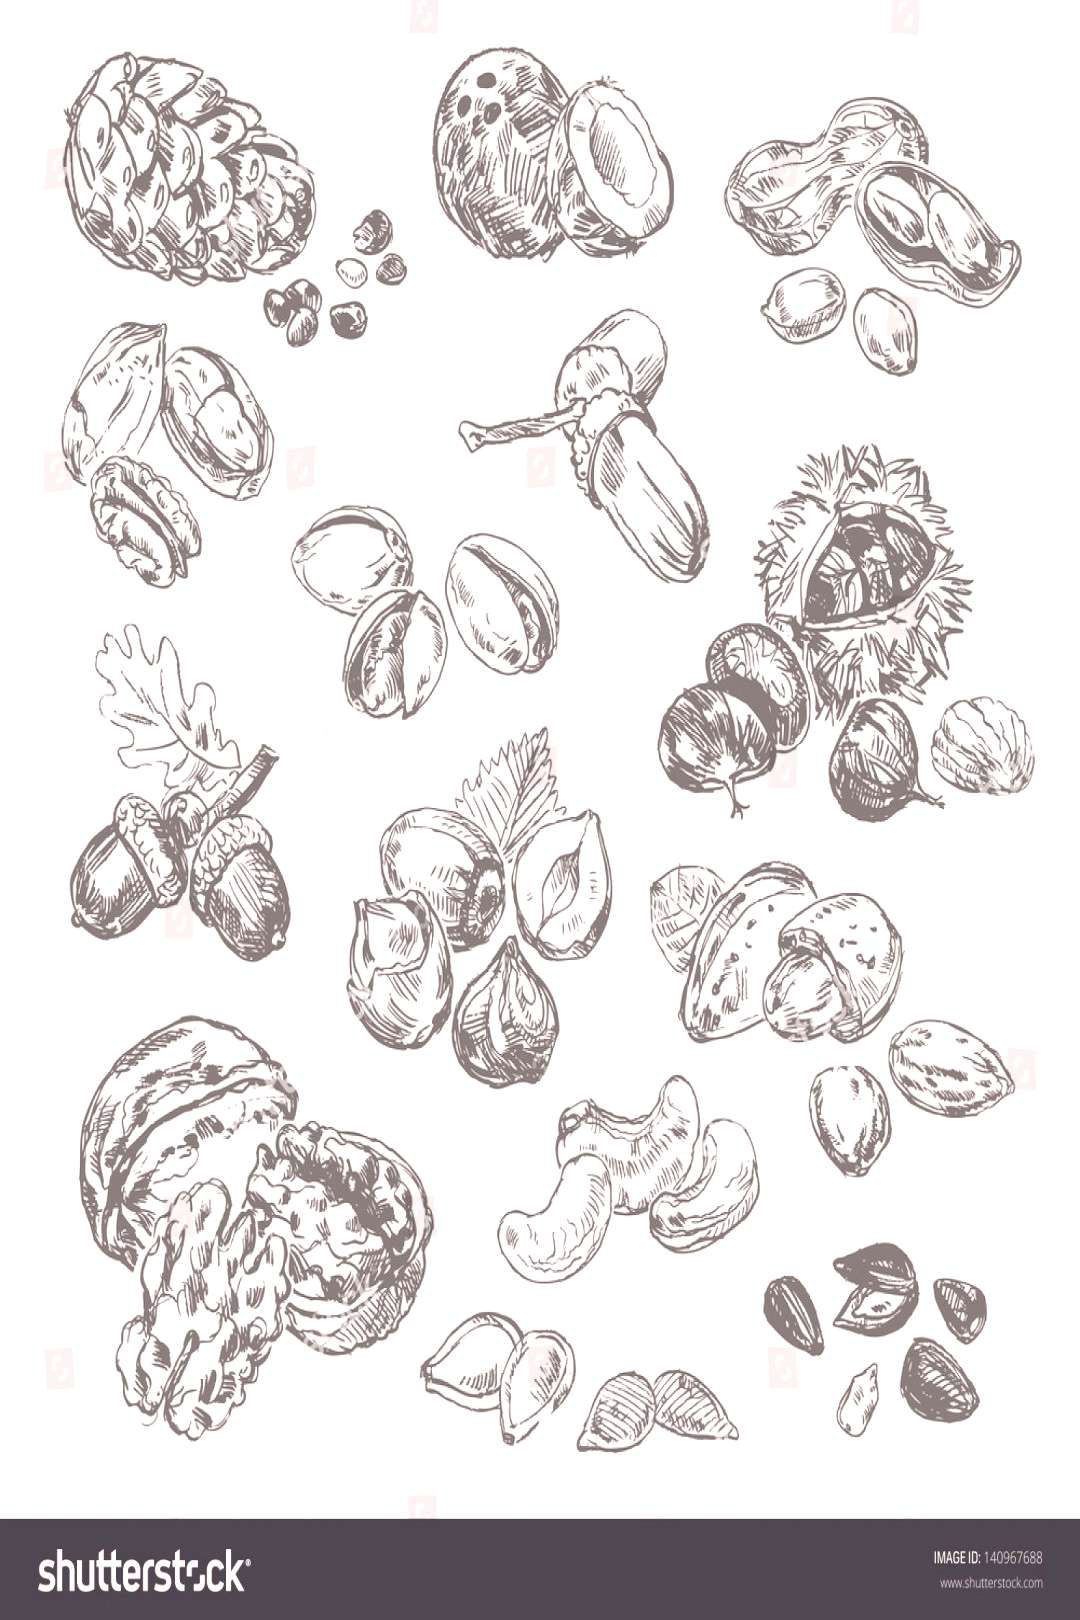 Freehand drawing nuts. Pistachios, cashews, coconut, filbert, peanuts, almonds, acorn, coconut, see